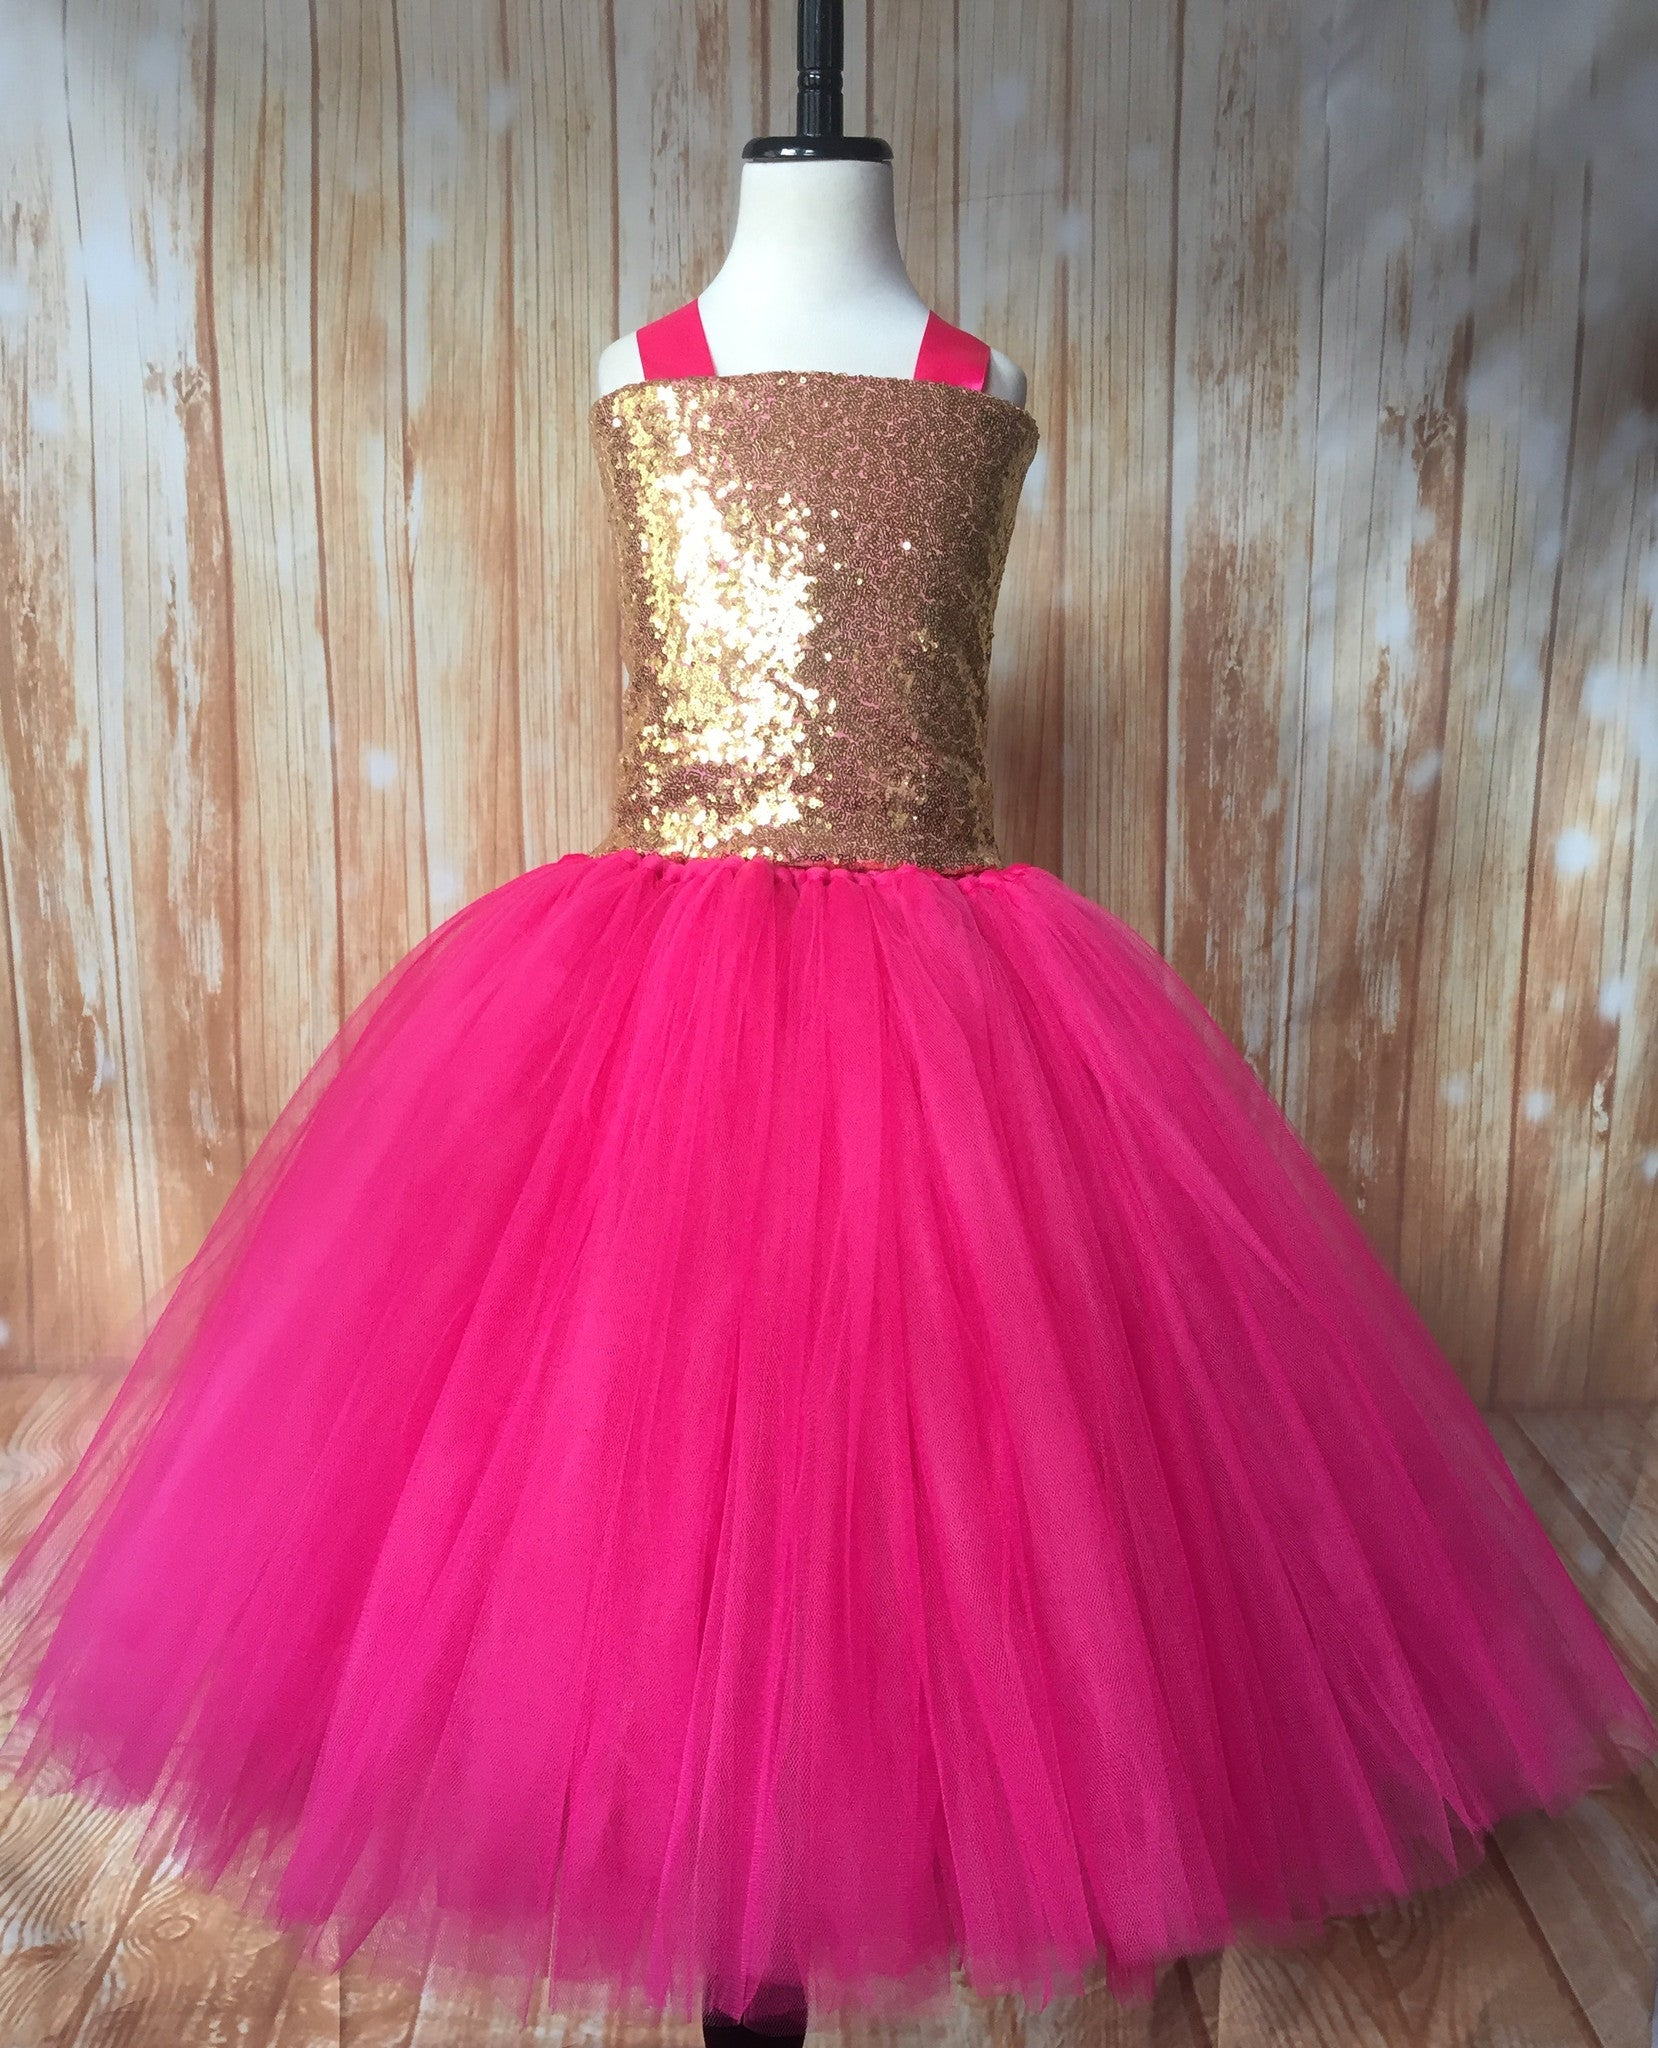 5f24876b8 Gold & Pink Tutu, Gold and Hot Pink Tutu Dress, Girls Hot Pink & Gold  Pageant Tutu